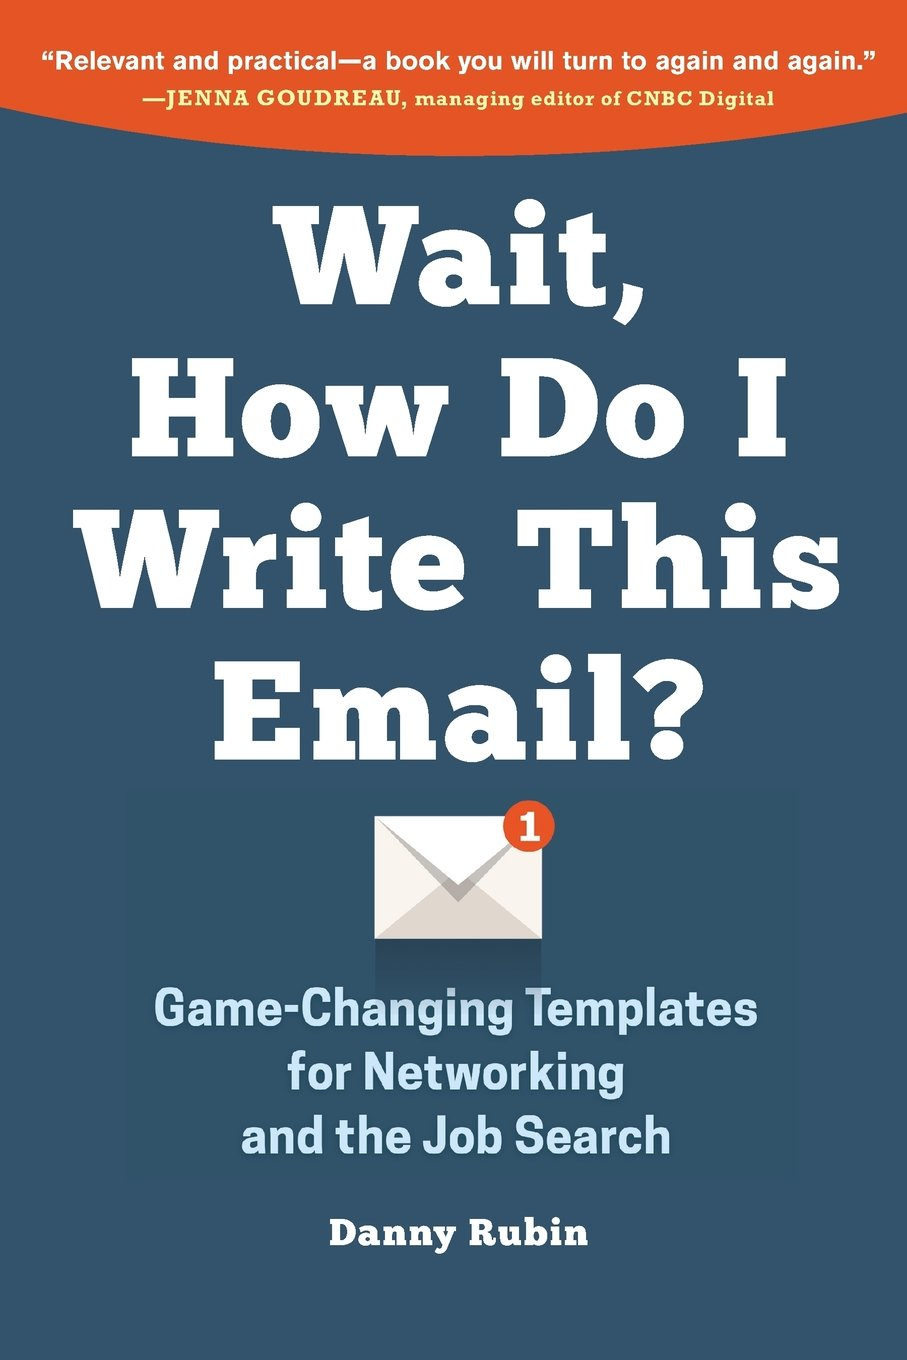 Wait, How Do I Write This Email?: Game-Changing Templates for